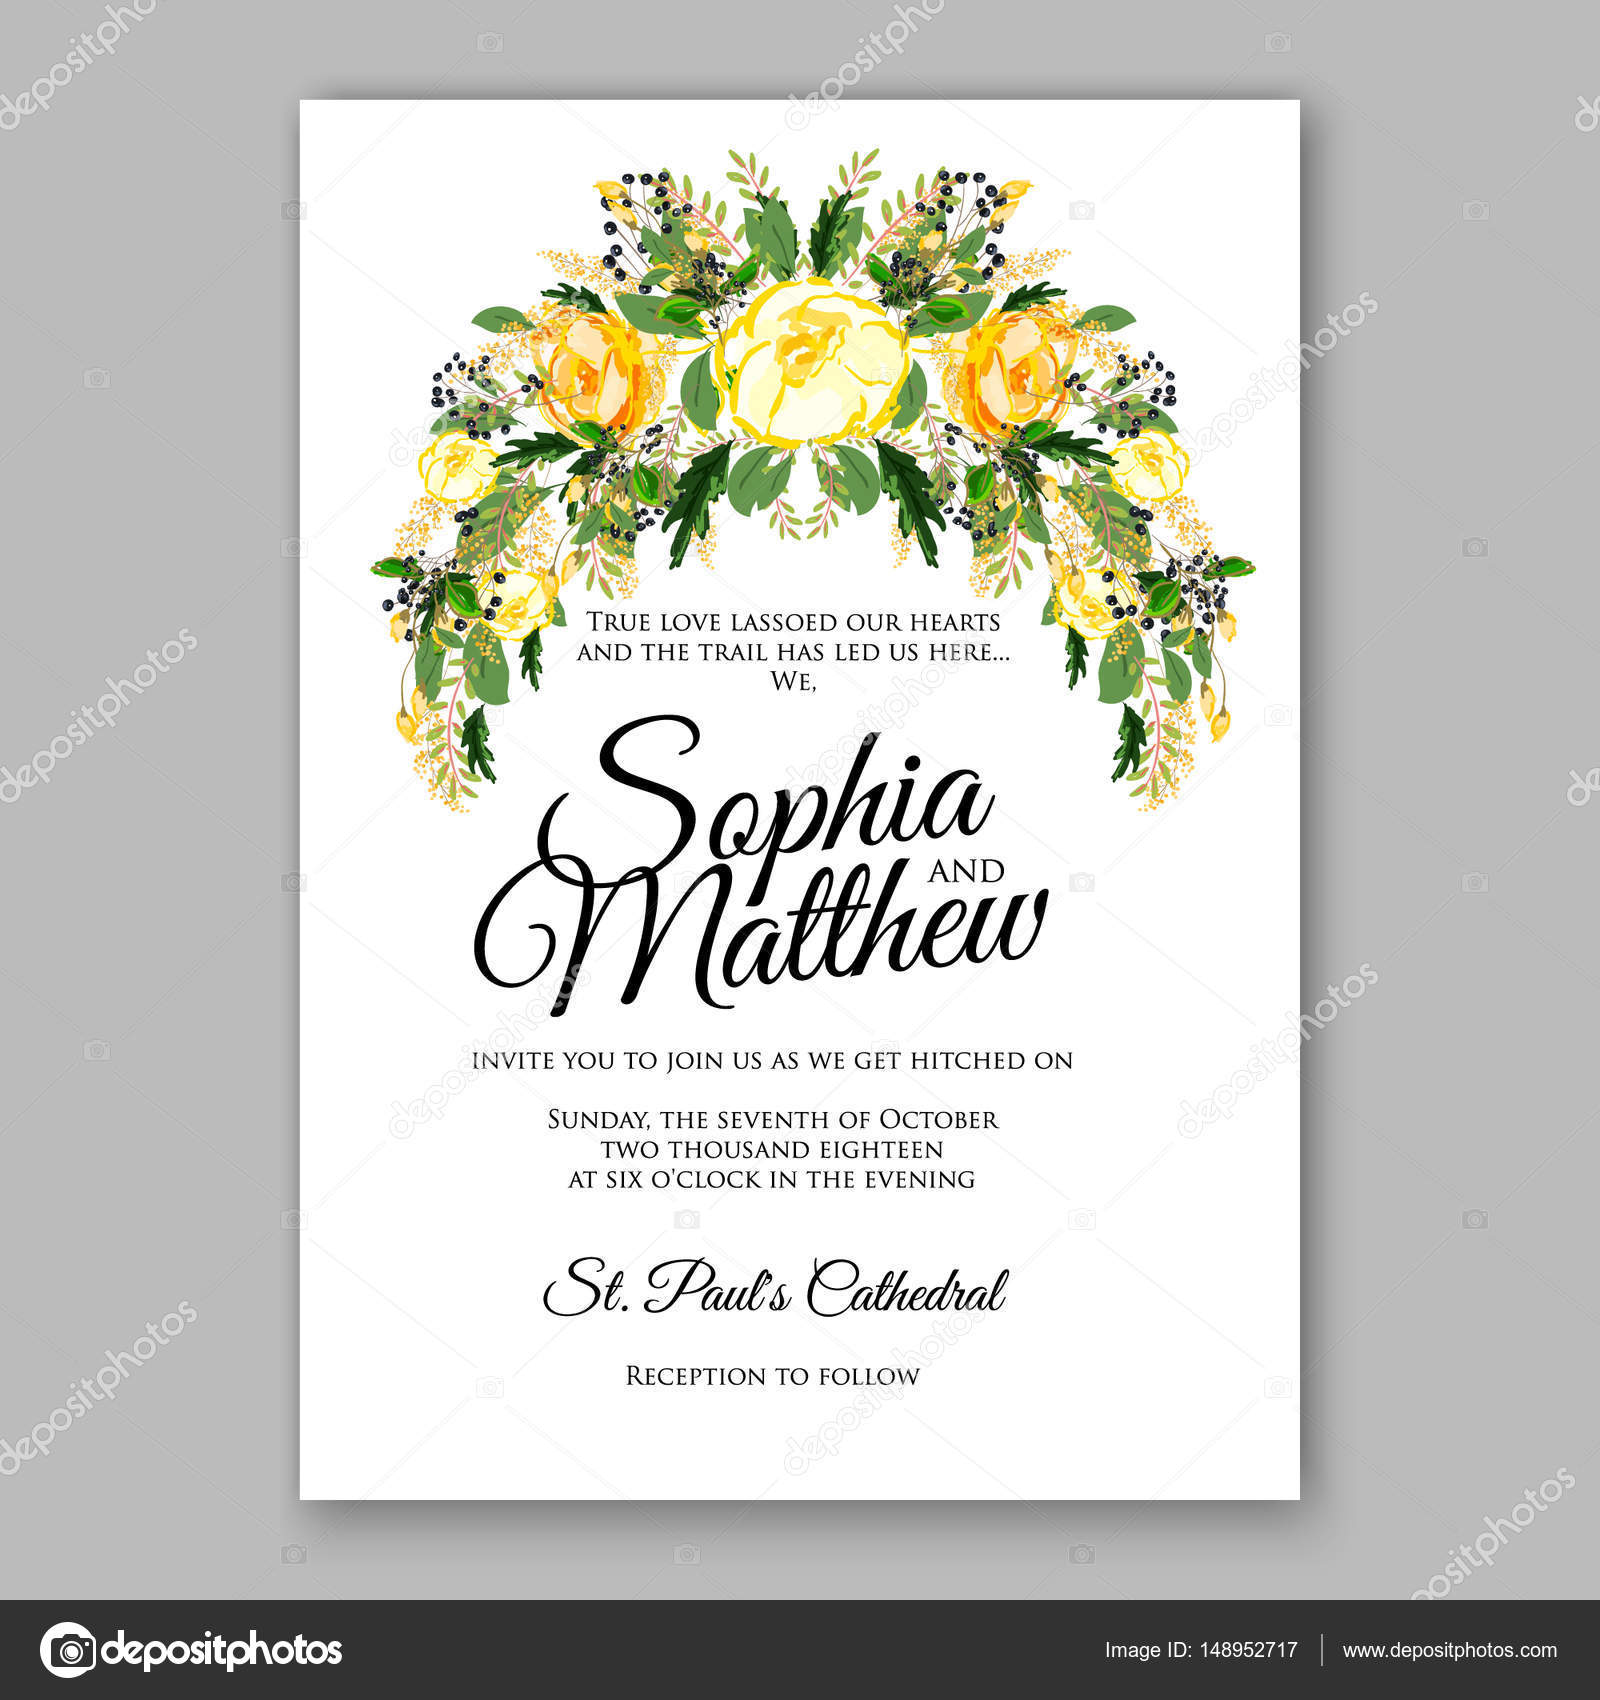 Wedding invitation card template yellow rose floral printable gold wedding invitation card template yellow rose floral printable gold bridal shower invitation suite vector by samka ua stopboris Images